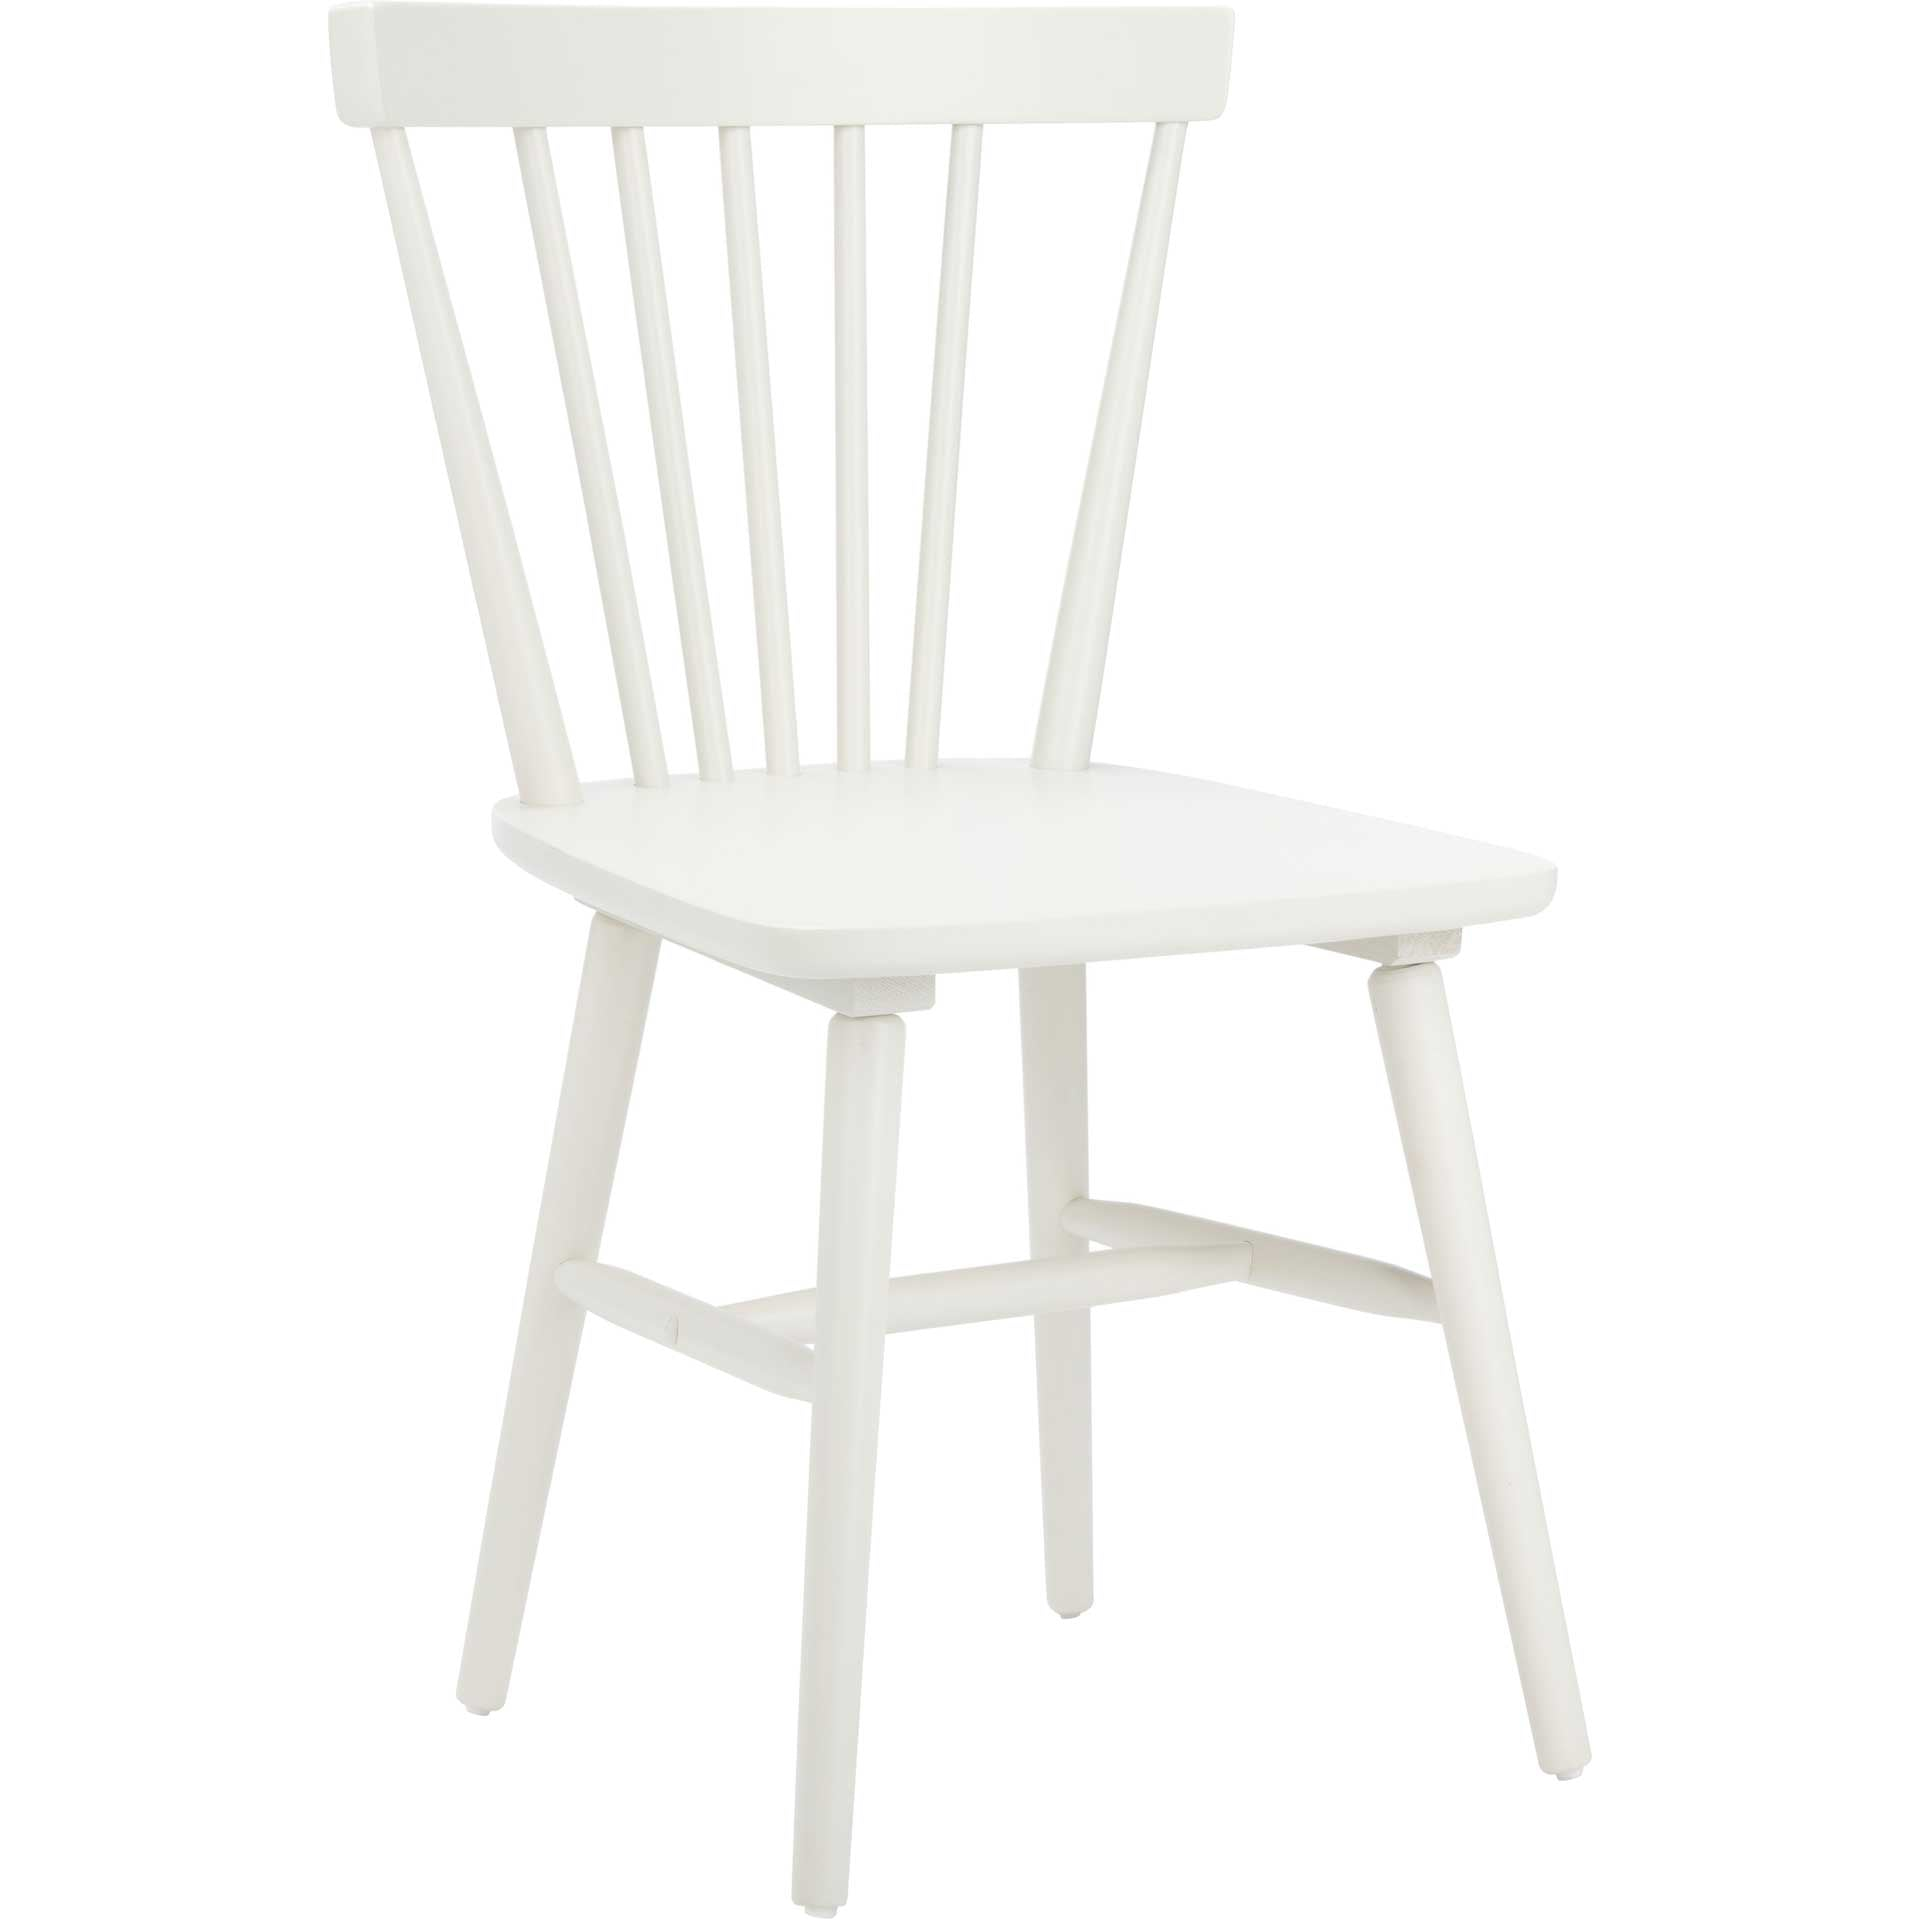 Wilder Spindle Back Dining Chair Off White (Set of 2)